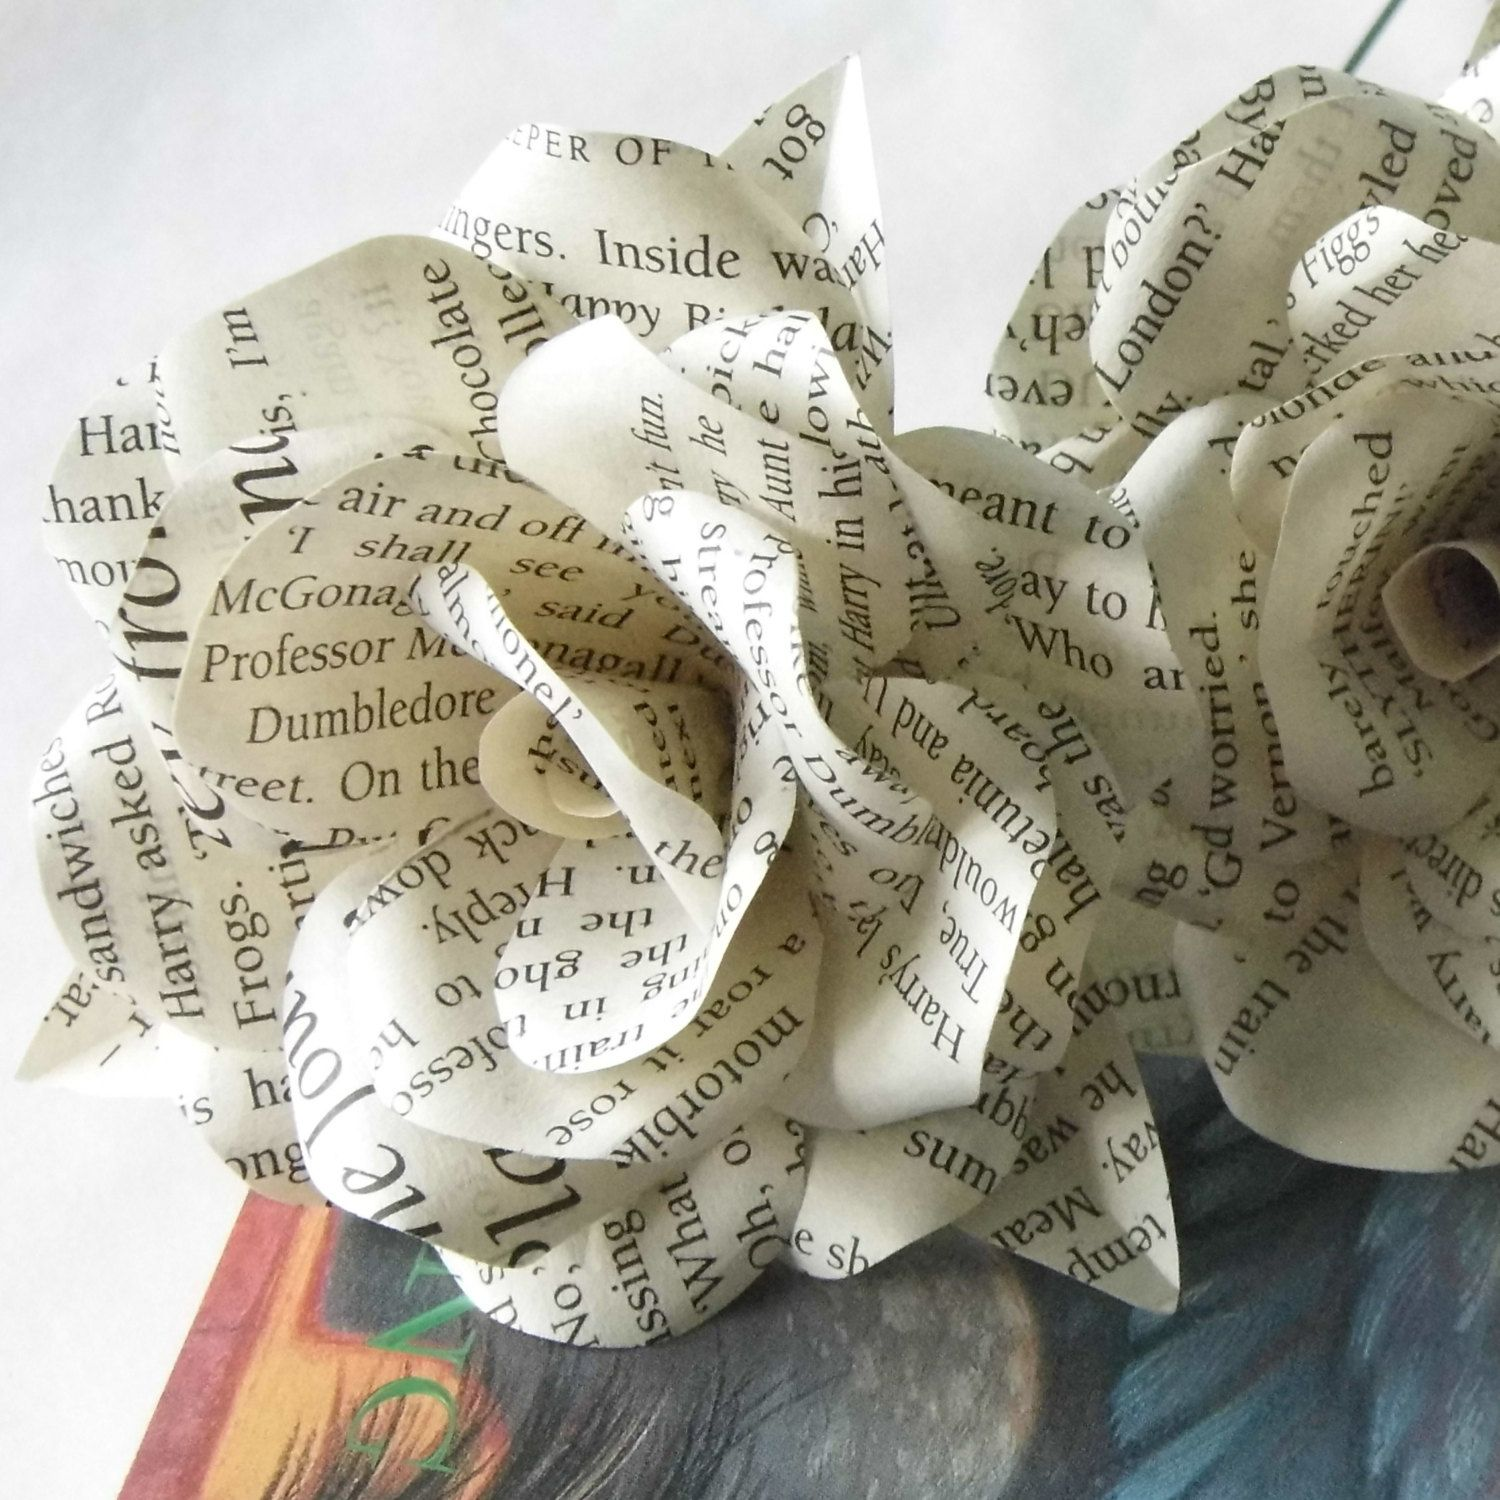 6 x harry potter paper roses book page paper flower roses 6 x harry potter paper roses book page paper flower roses handmade paper roses dhlflorist Image collections